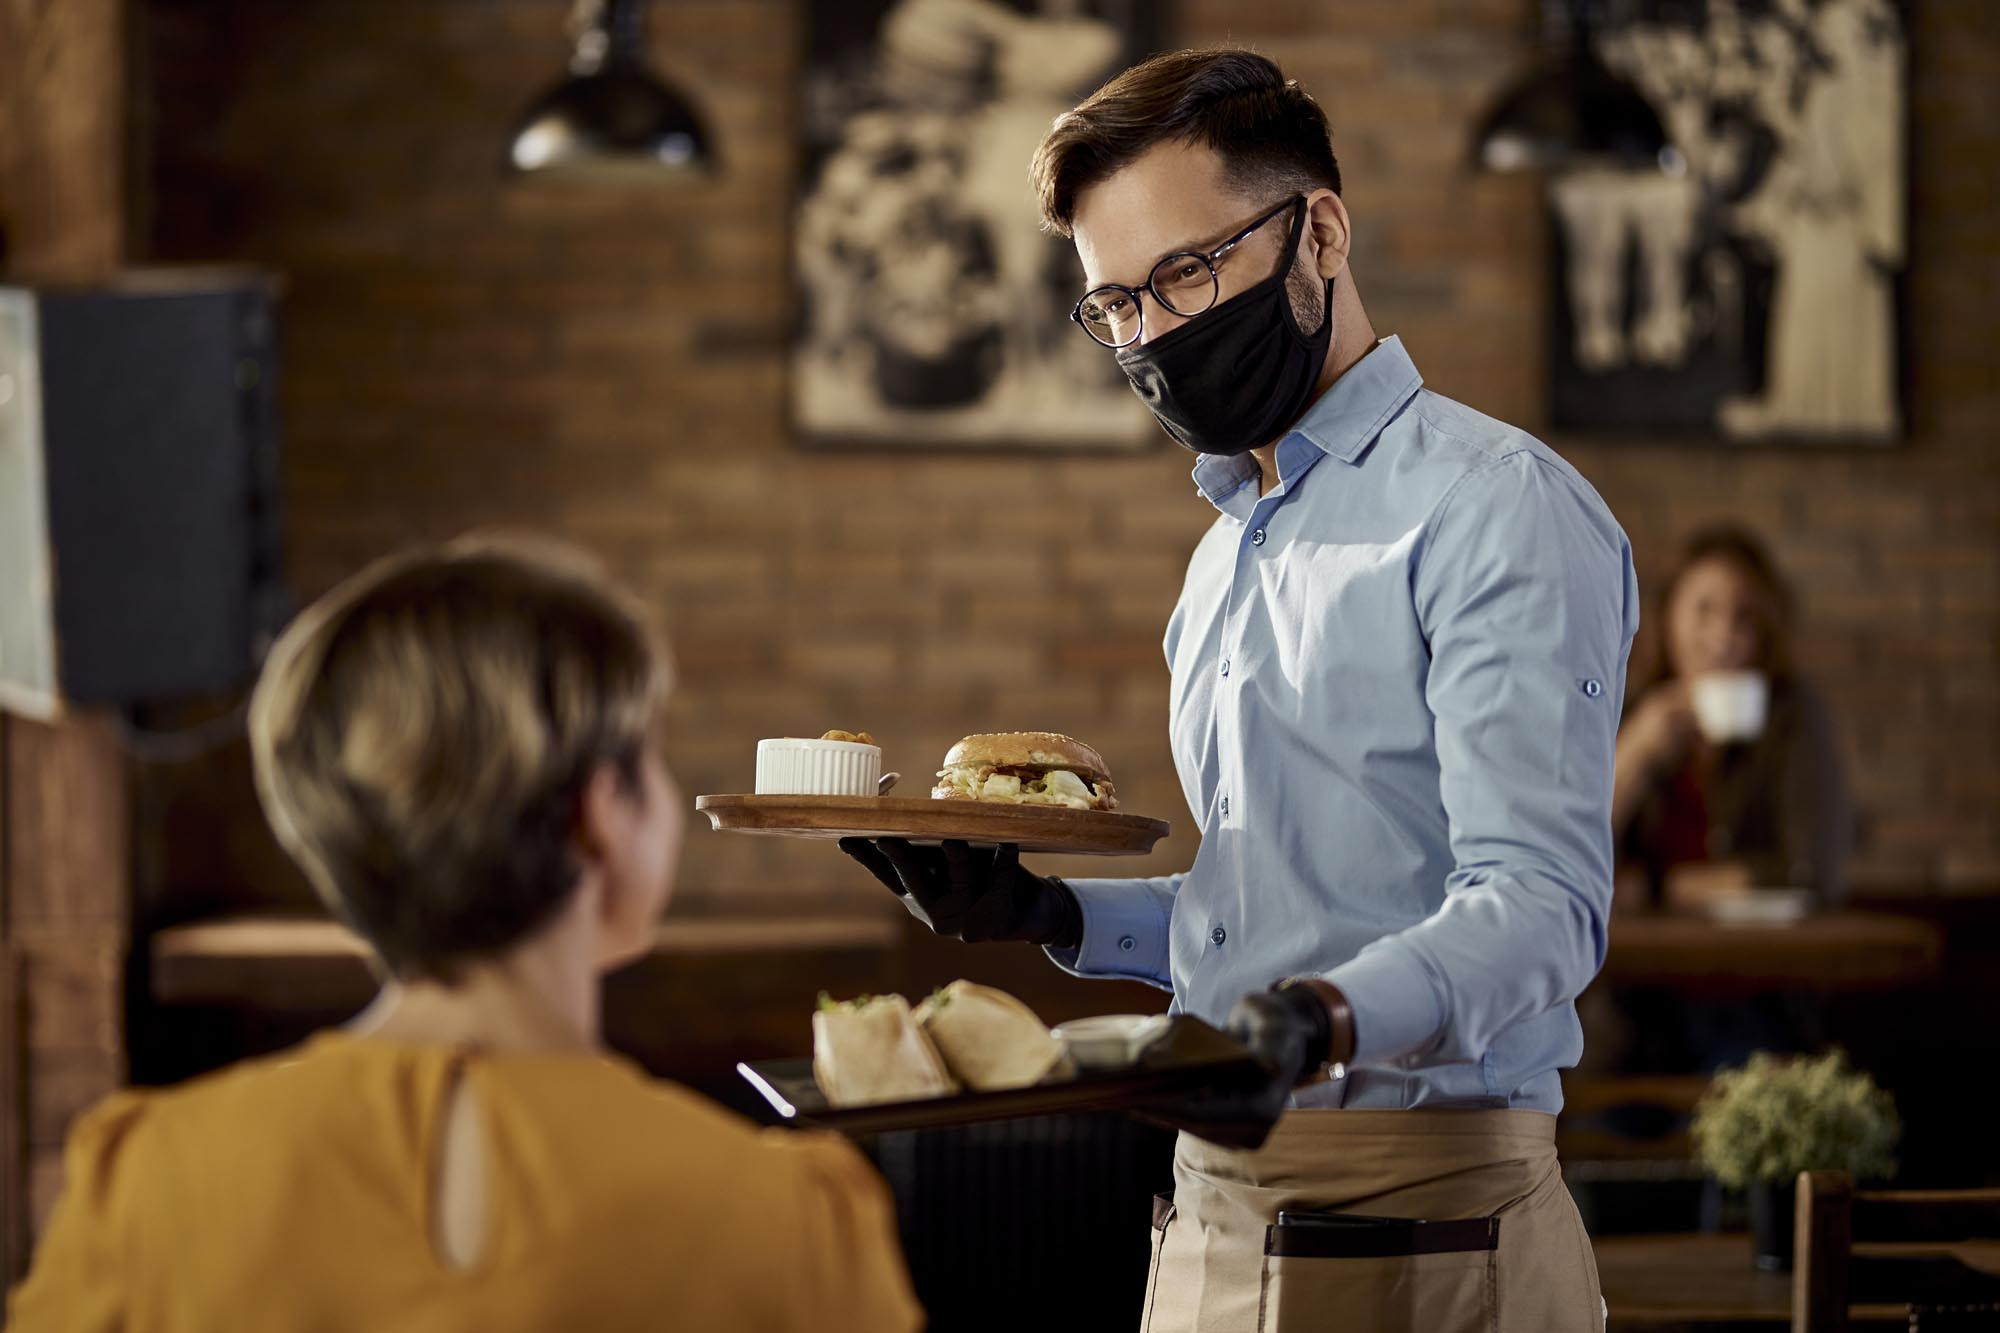 Motivate Restaurant Servers to Increase Sales